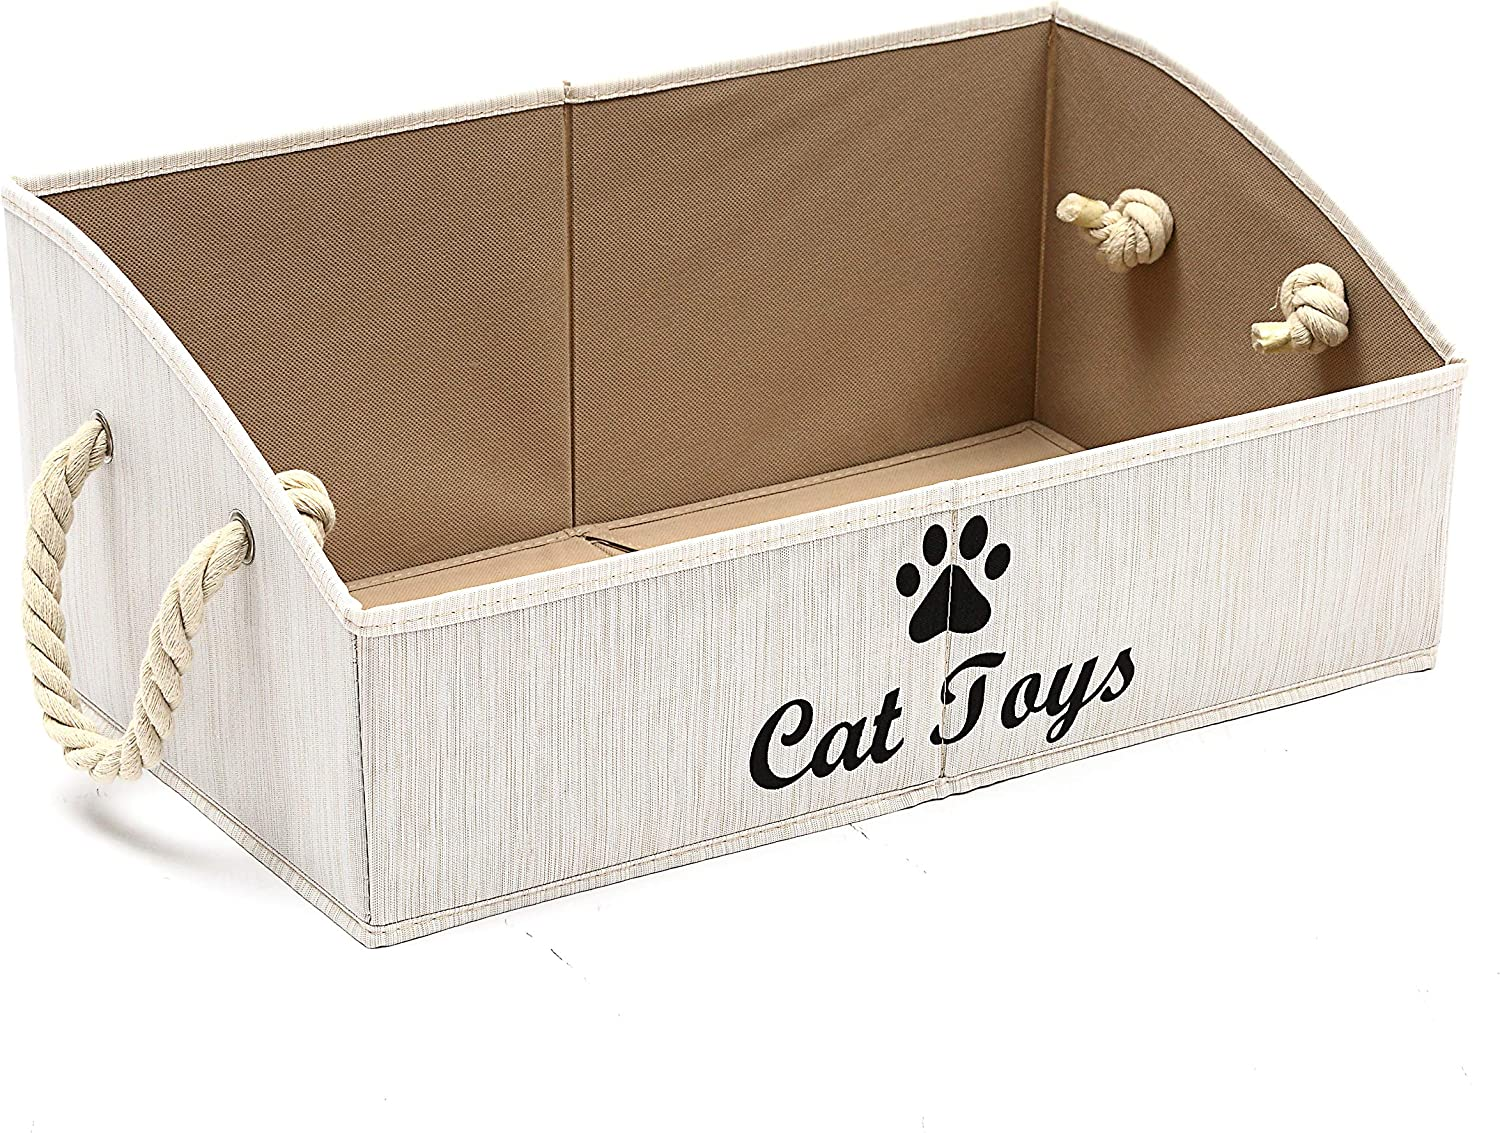 Geyecete Large cat Toys Storage Bins - Foldable Fabric Trapezoid Organizer Boxes with Cotton Rope Handle, Collapsible Basket for Shelves,cat Toys,cat Apparel & Accessories (Beige-CAT)